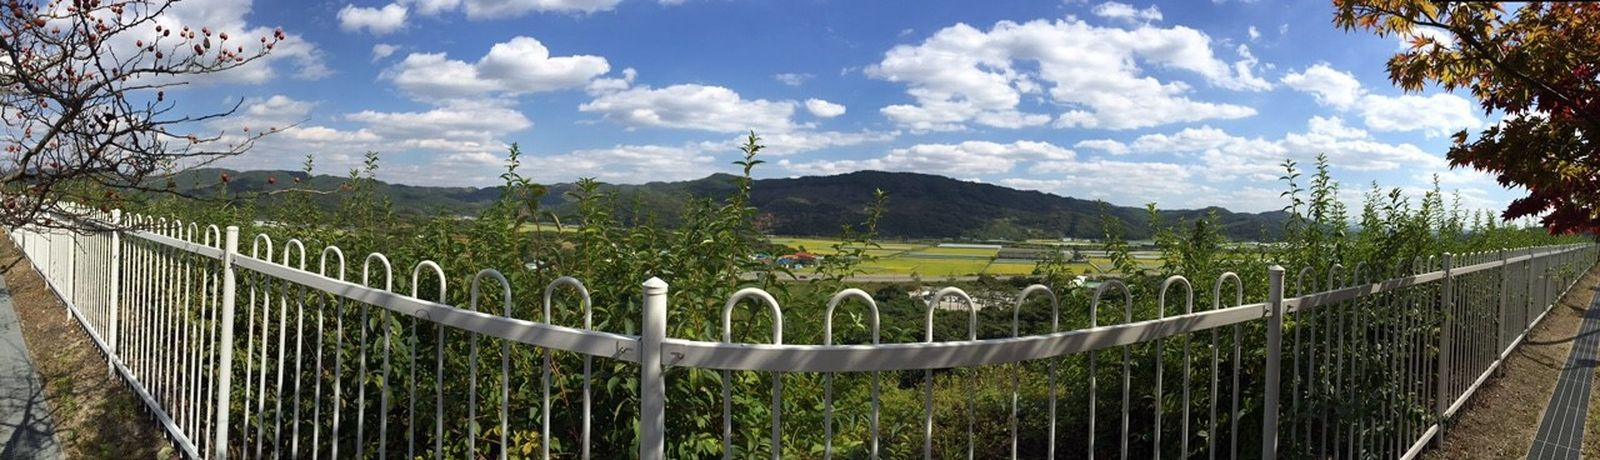 Hello World Haru Country Road Panorama 自然満々 Yesterday Phot 今日は高速で移動せねば‥😂😂チーン